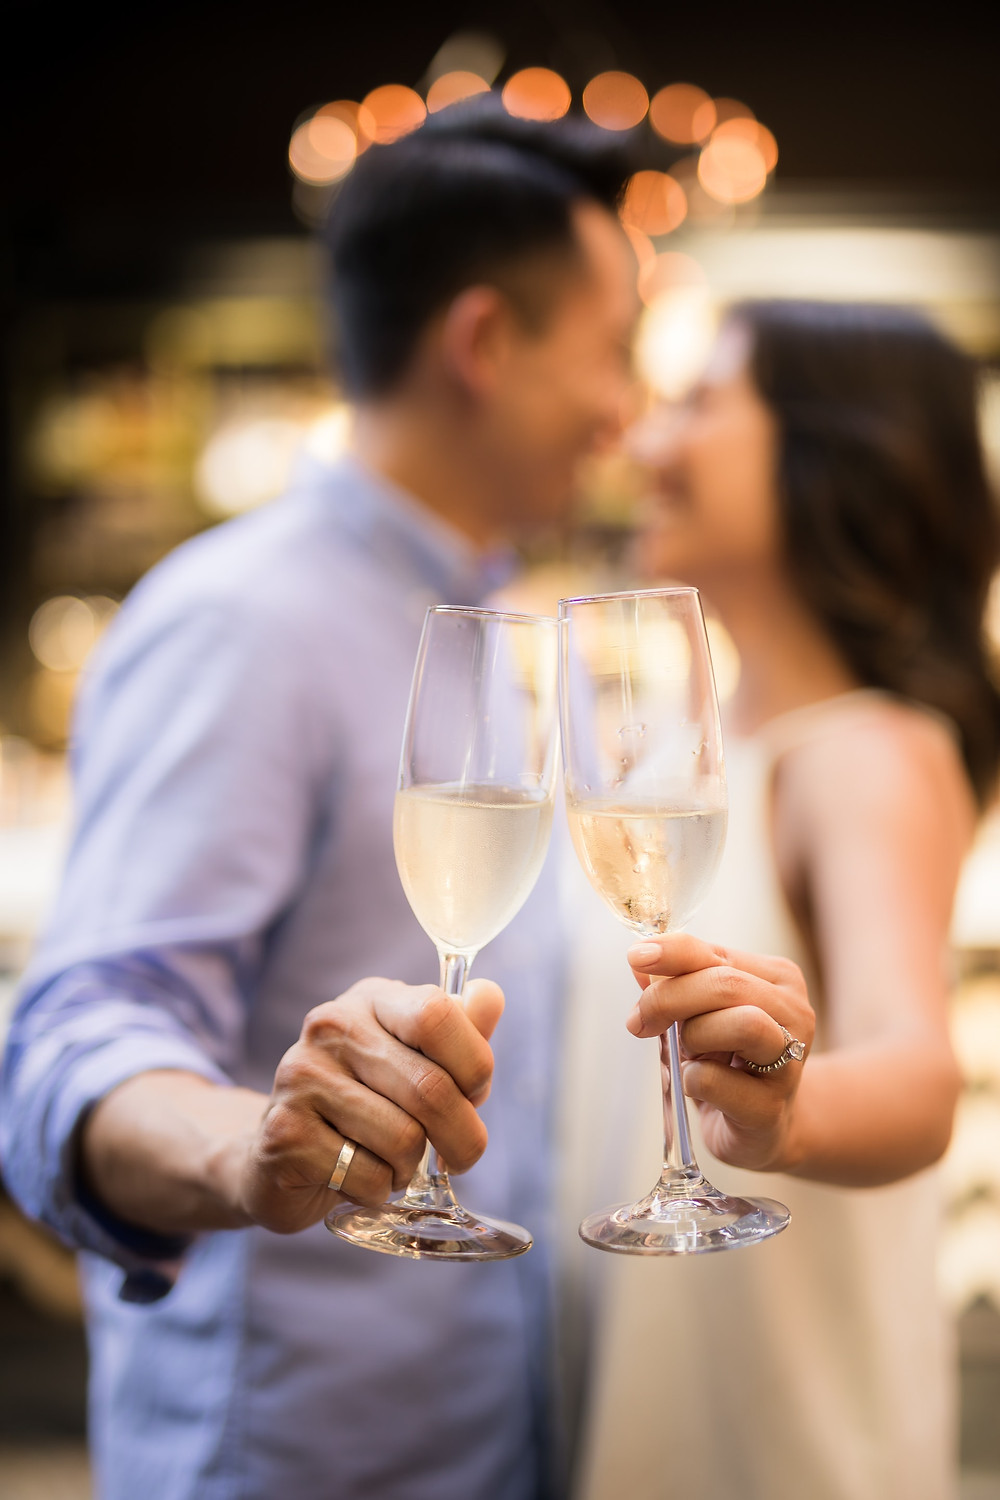 Celebrate Your Original Wedding Date If You Have to Postpone